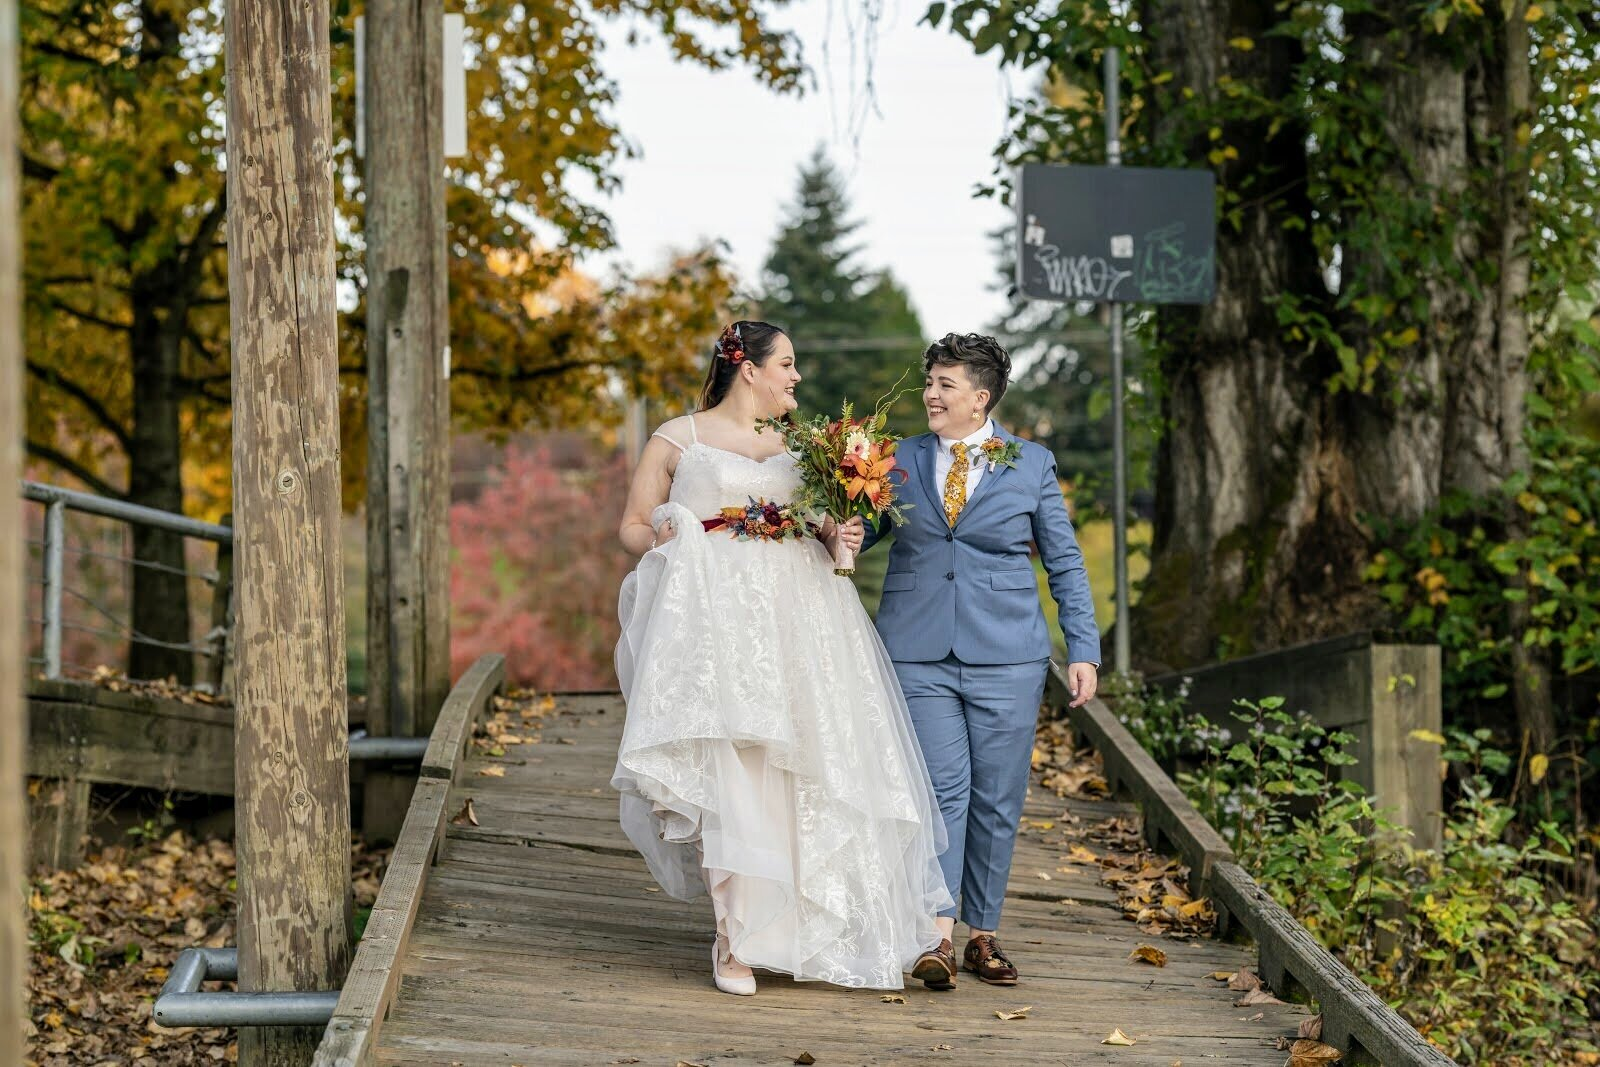 B & B's destination wedding captured by Fly View Productions at (and near) Oaks Pioneer Church.